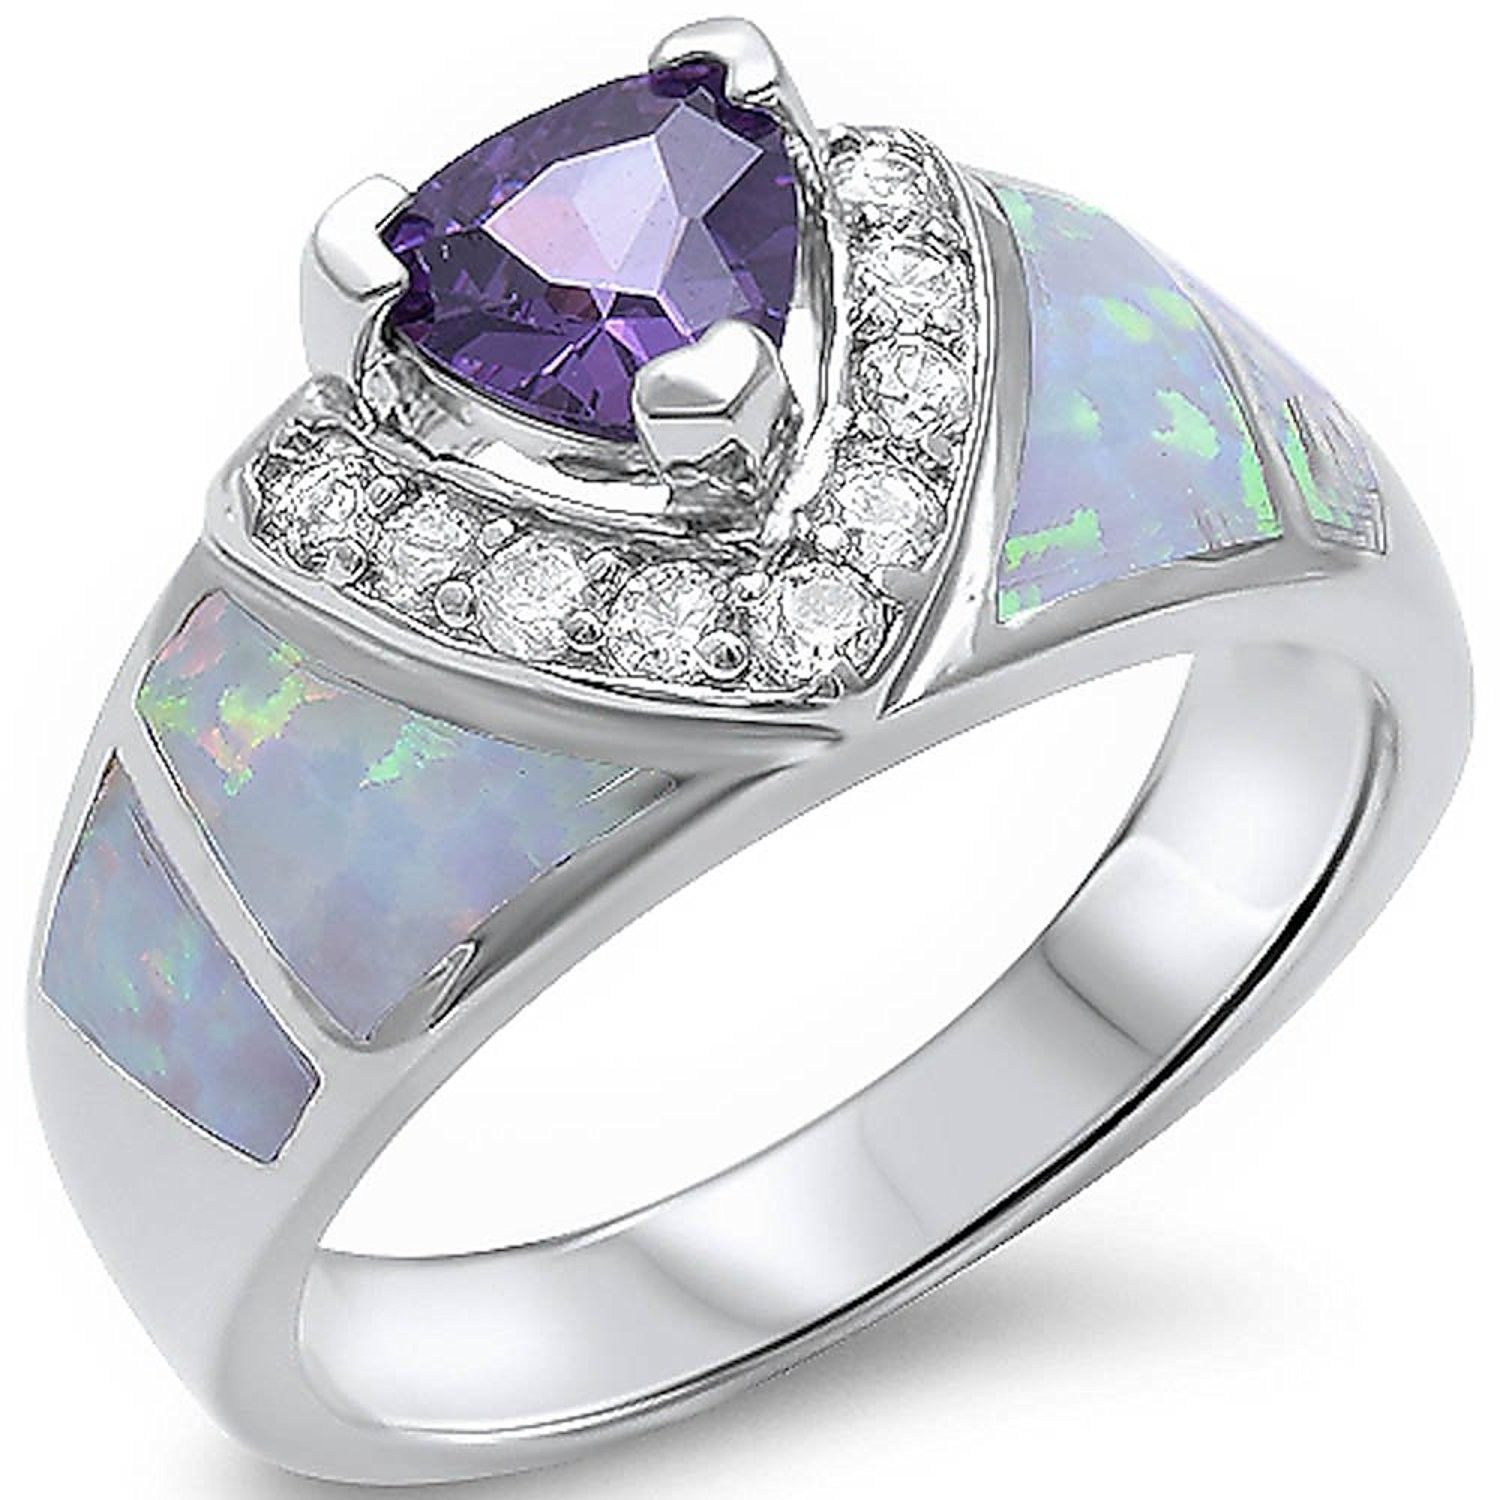 Amethyst CZ White Lab Opal Fashion Ring New .925 Sterling Silver Band Sizes 5-10